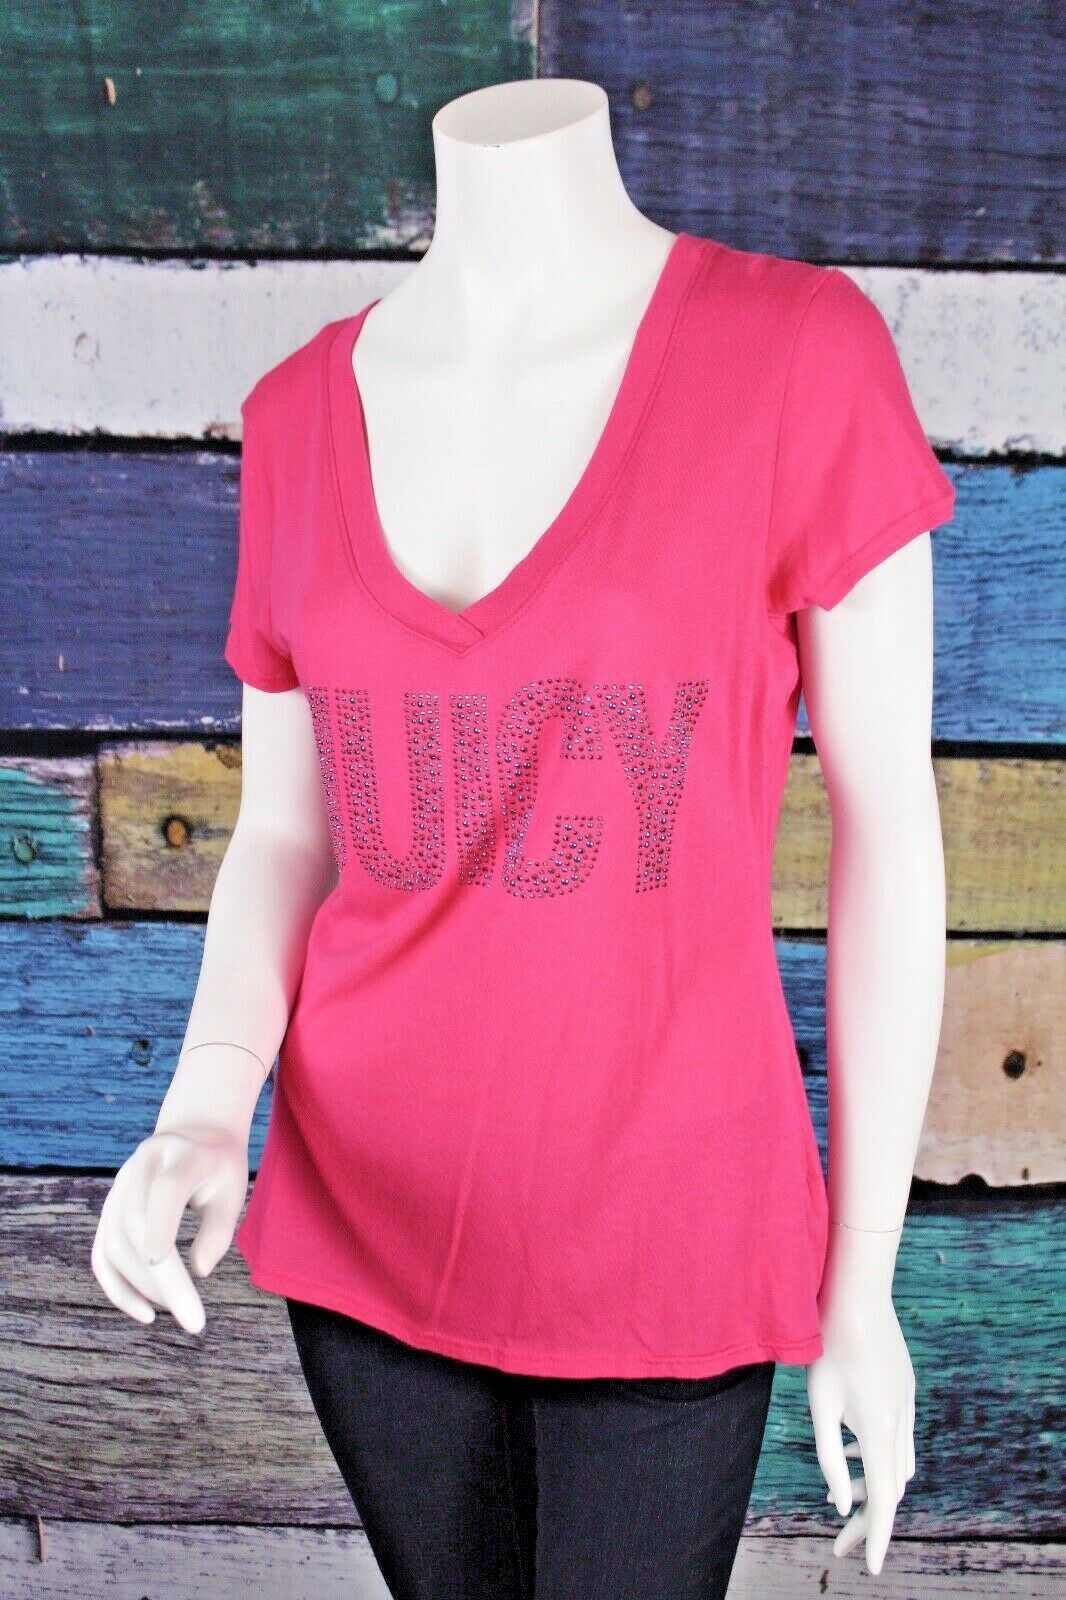 Primary image for Juicy Couture Large L Pink Cotton Modal Bling Rhinestone Embellished T-Shirt Tee